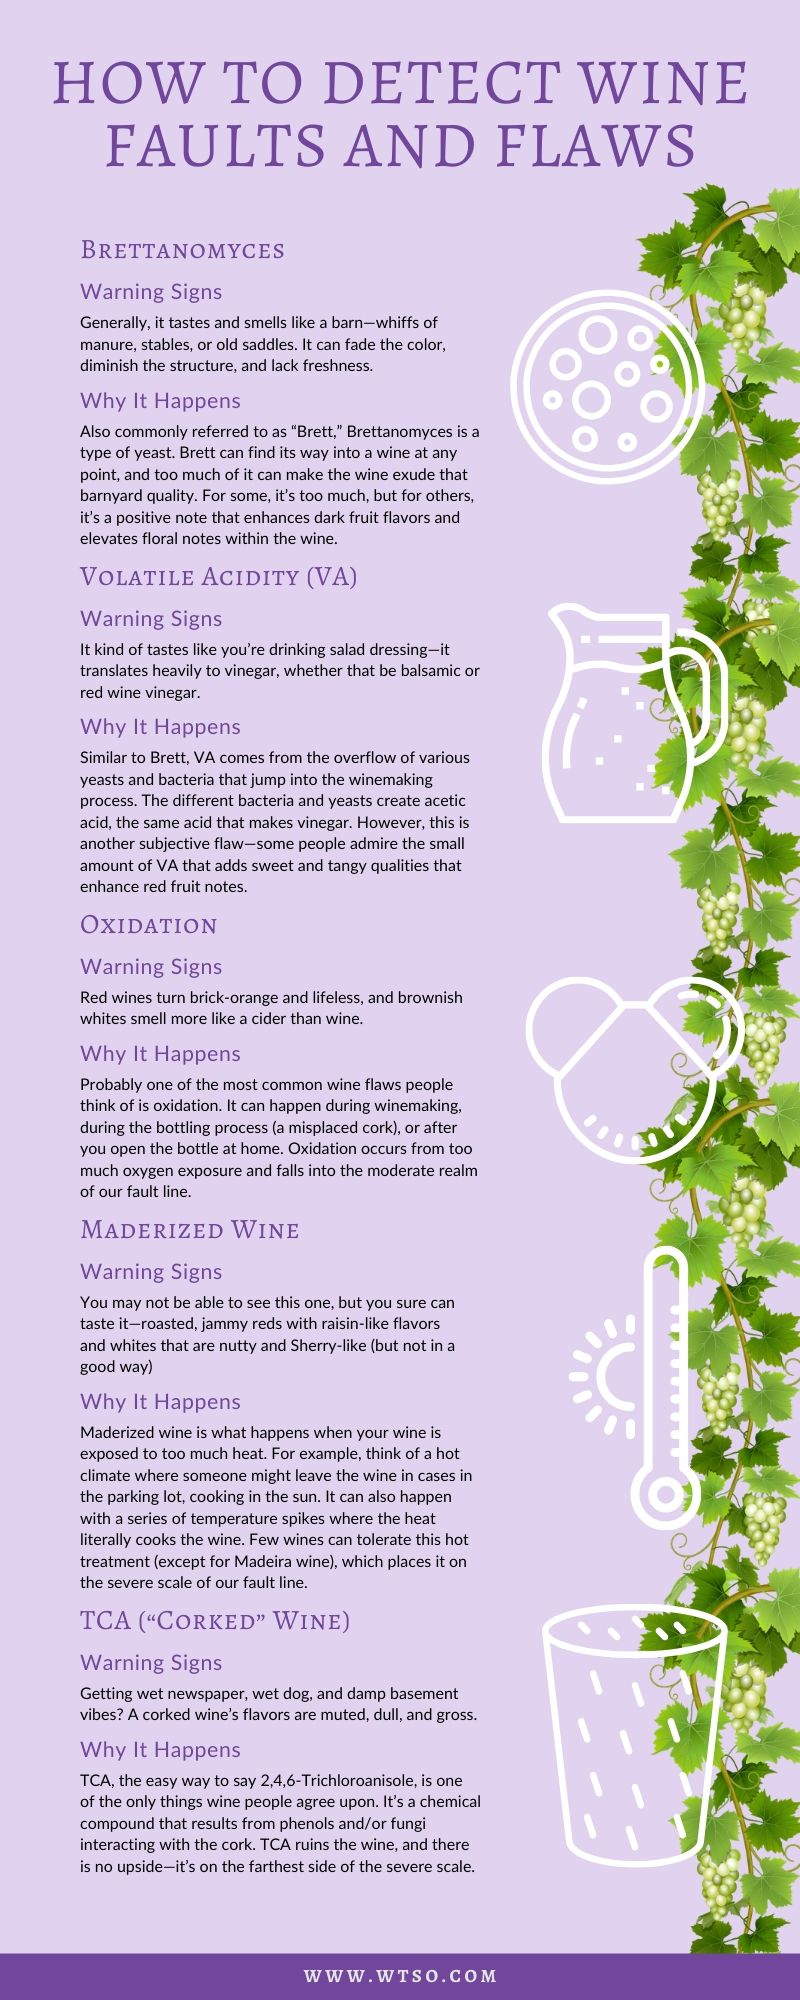 Infographic: How to Detect Wine Faults and Flaws